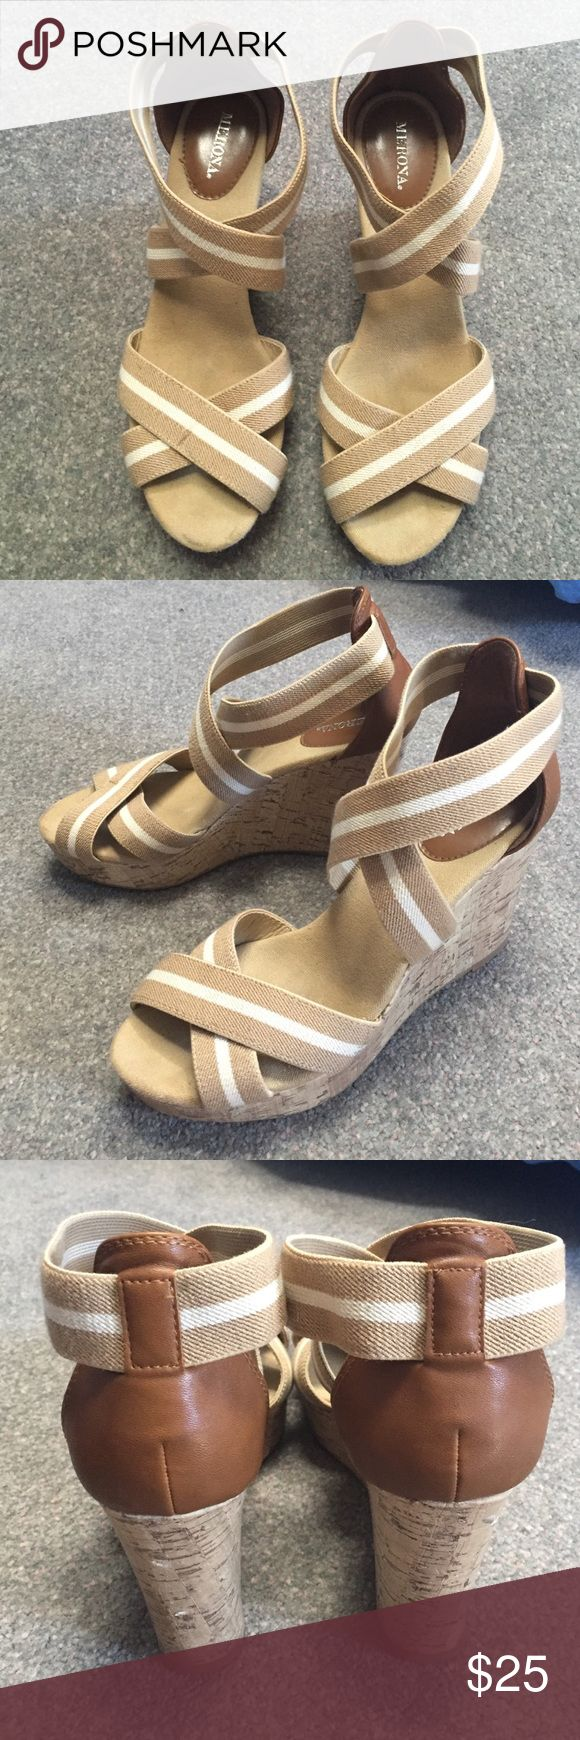 Merona Wedges • very comfy! • worn only a few times • two small dings in the heel cork (as pictured) but not very noticeable Merona Shoes Wedges